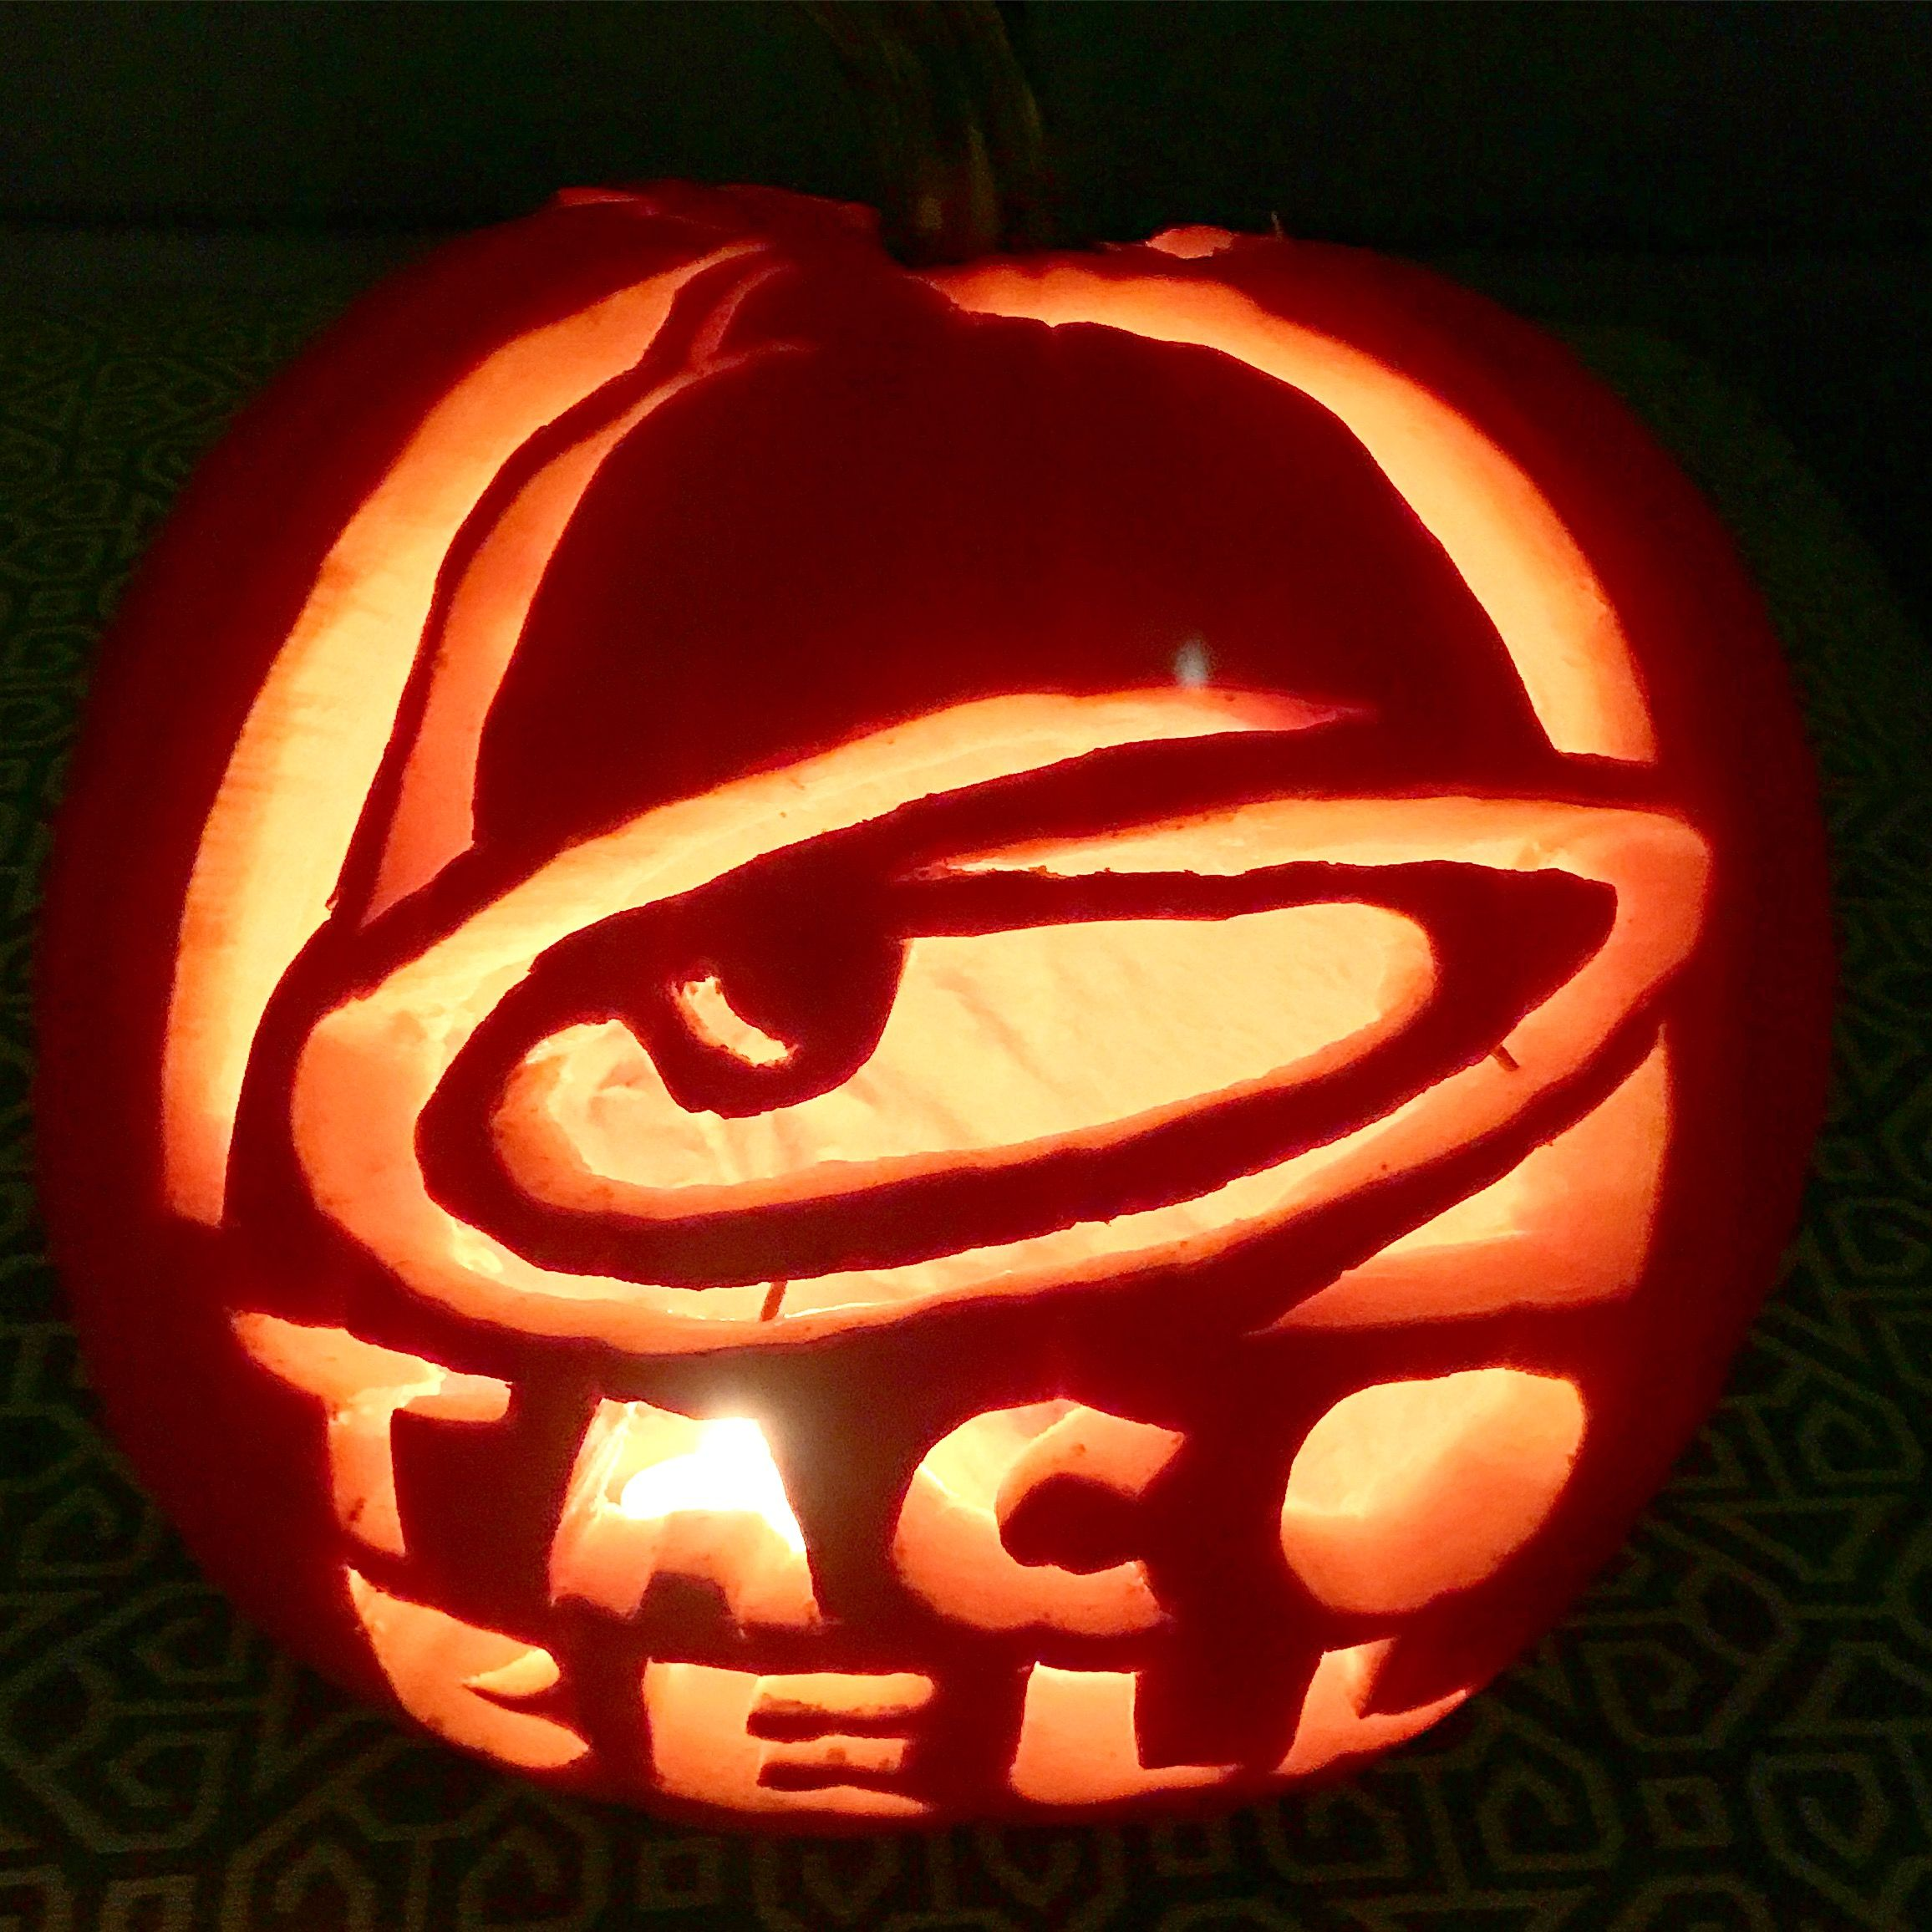 Taco Bell pumpkin carving DIY & Home Decor in 2018